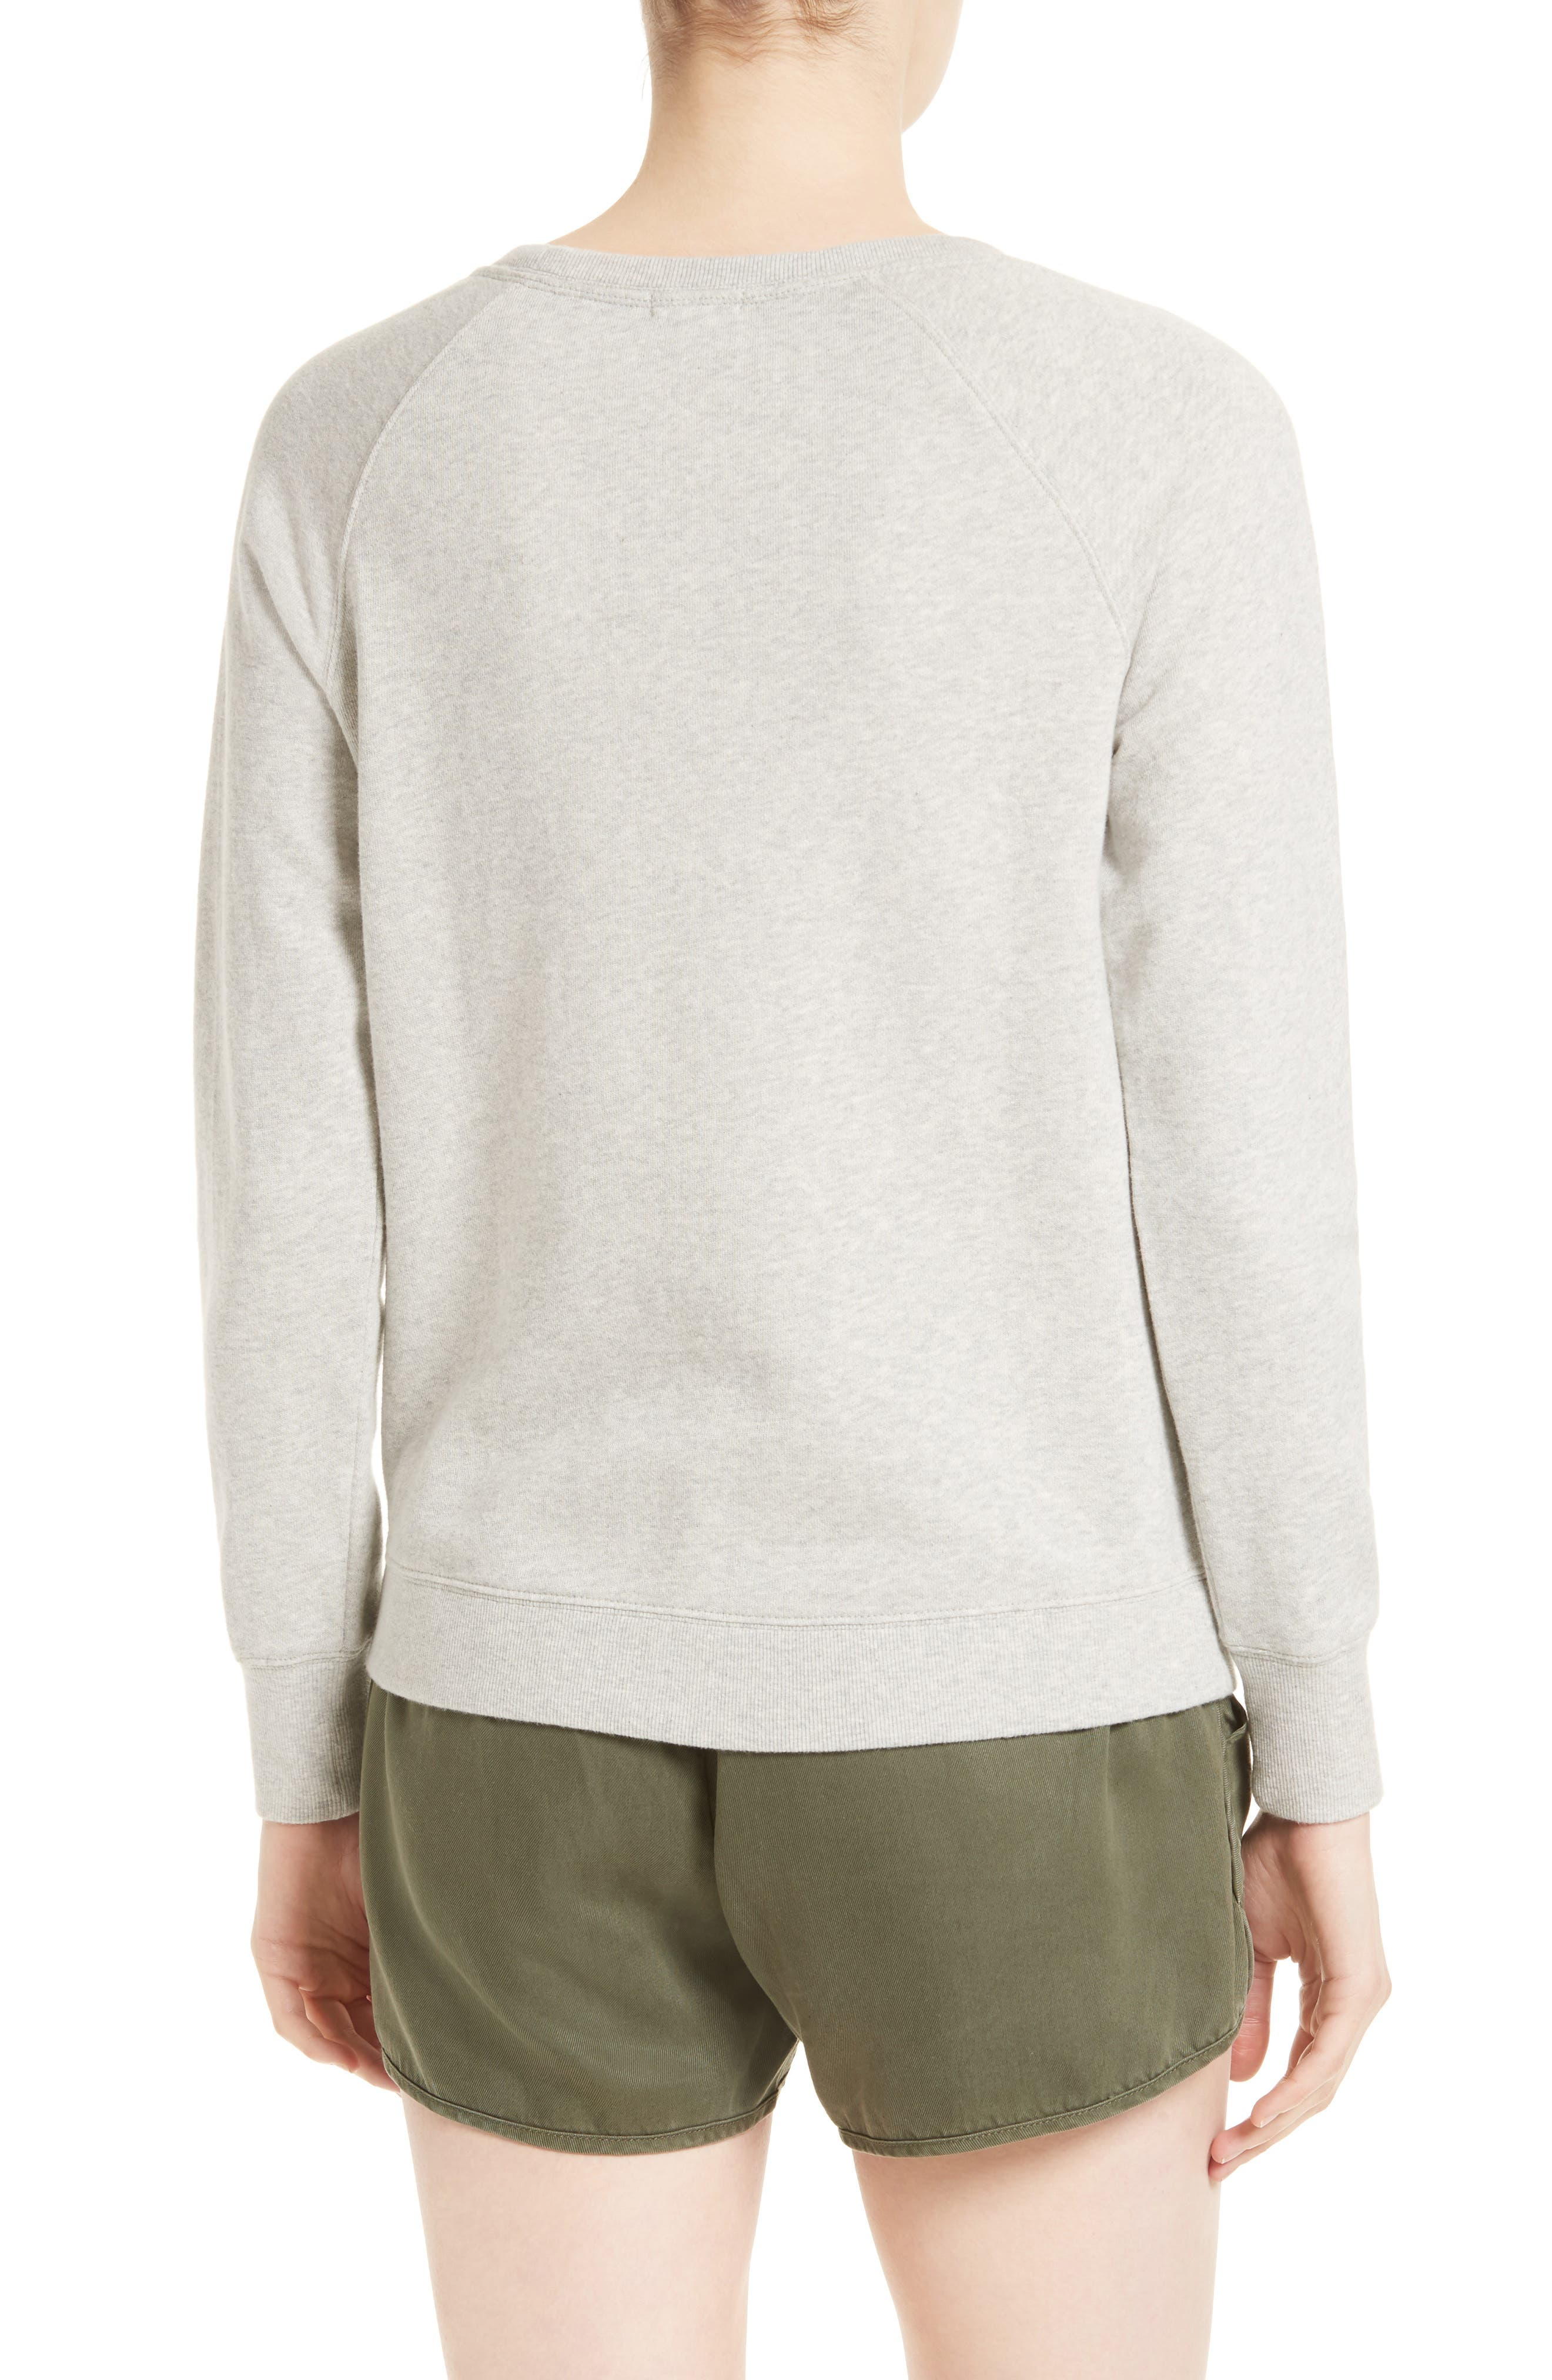 SOFT JOIE,                             Annora Embroidered Elephant Sweatshirt,                             Alternate thumbnail 2, color,                             099